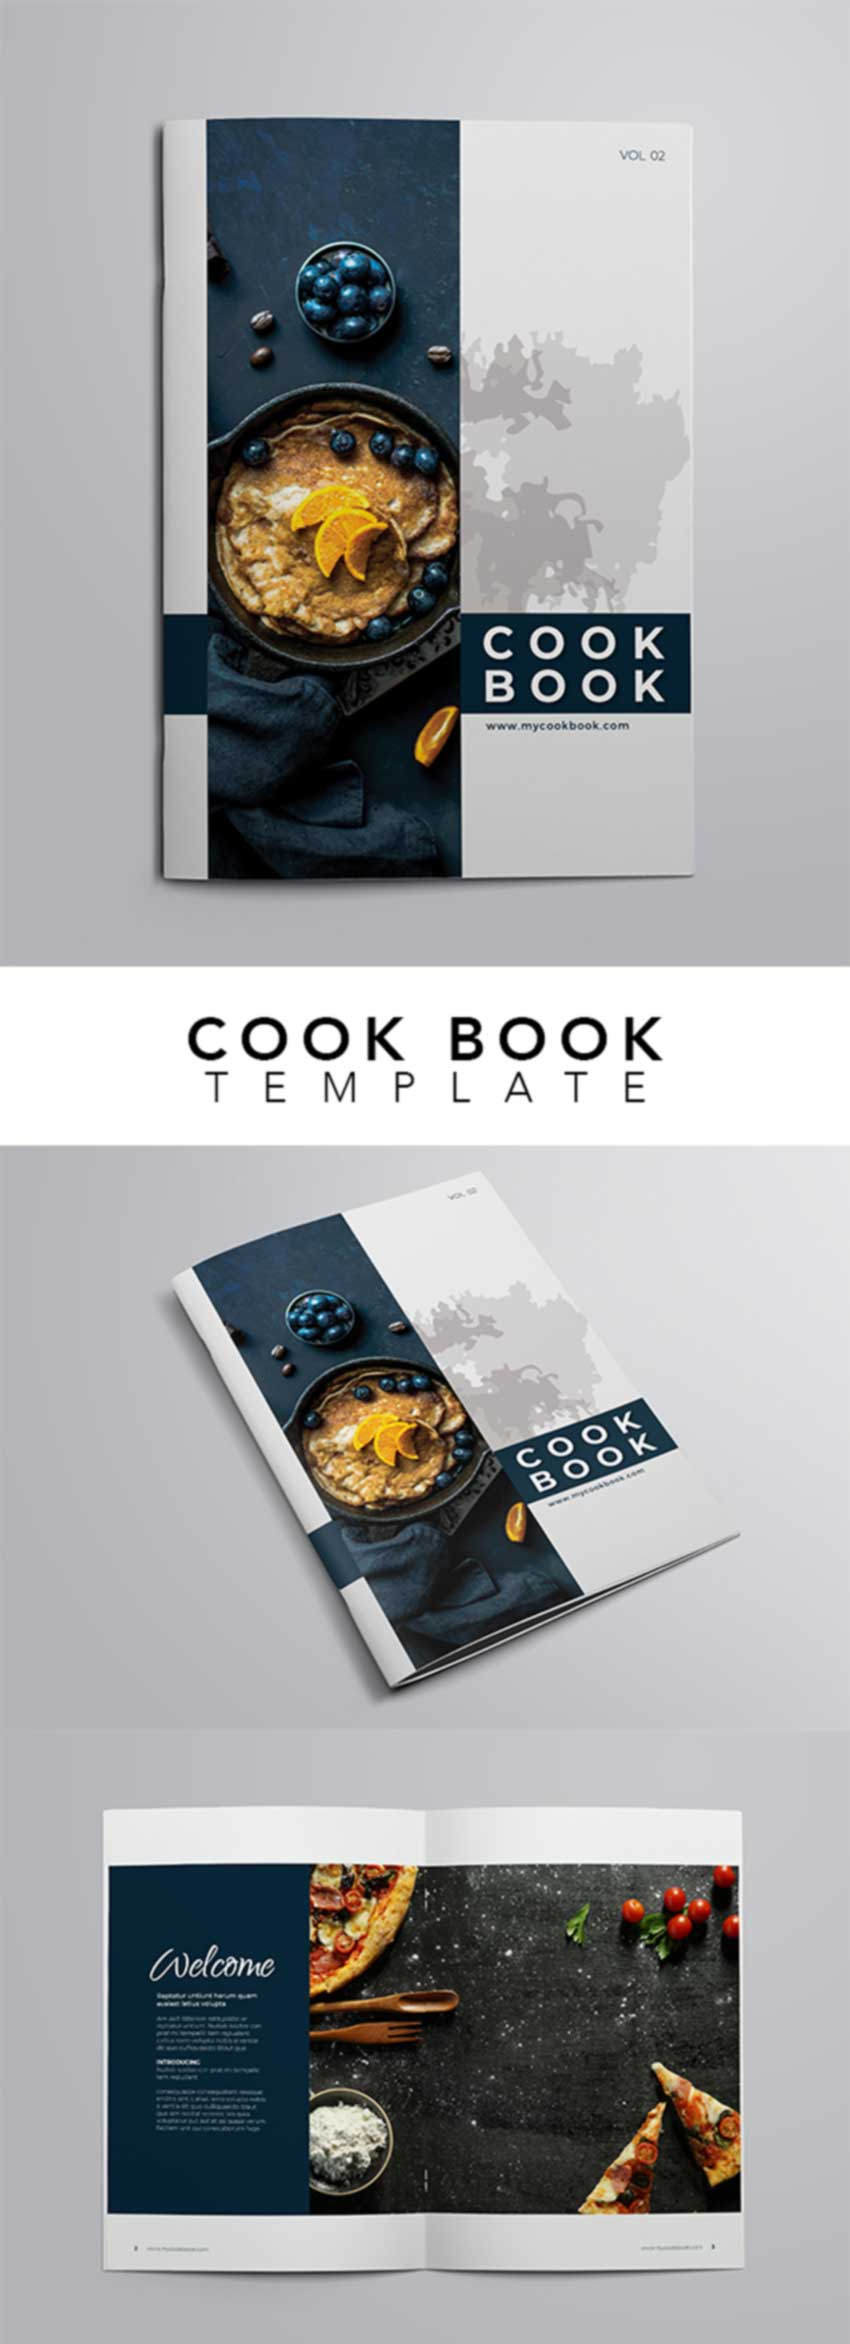 Recipes and Cook Book Template